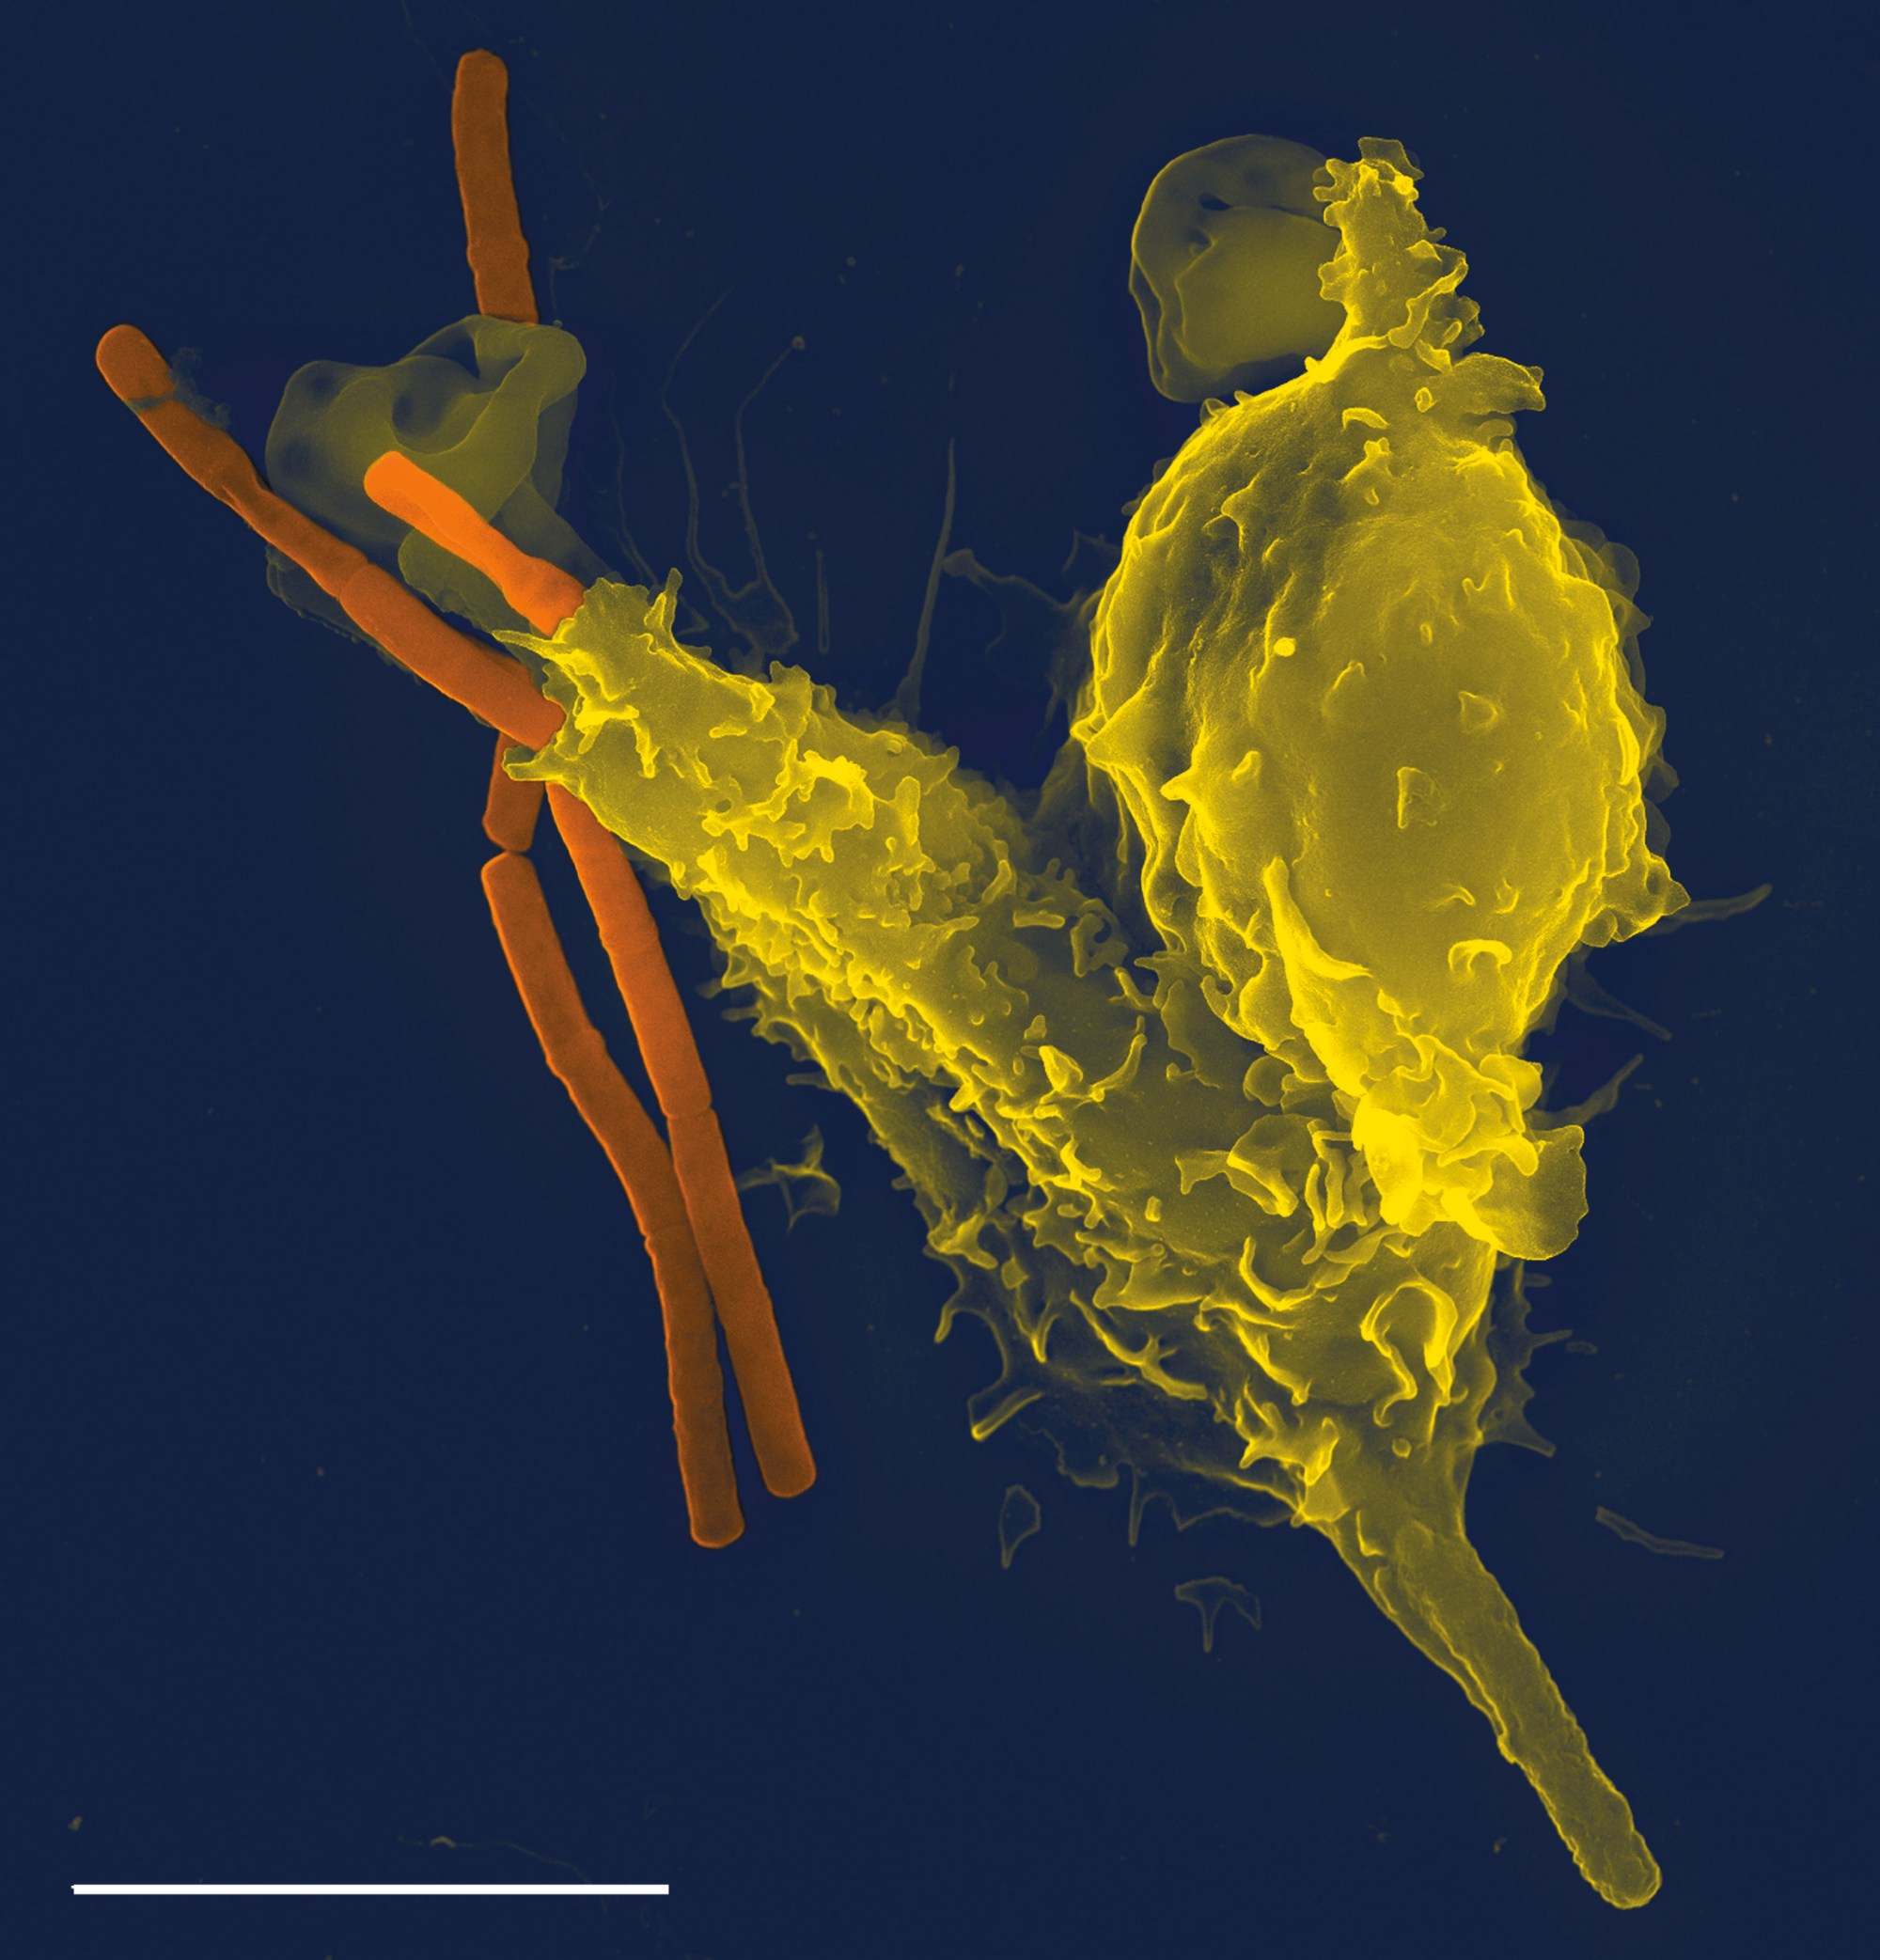 hight resolution of long rod shaped bacteria one of which has been partially engulfed by a larger